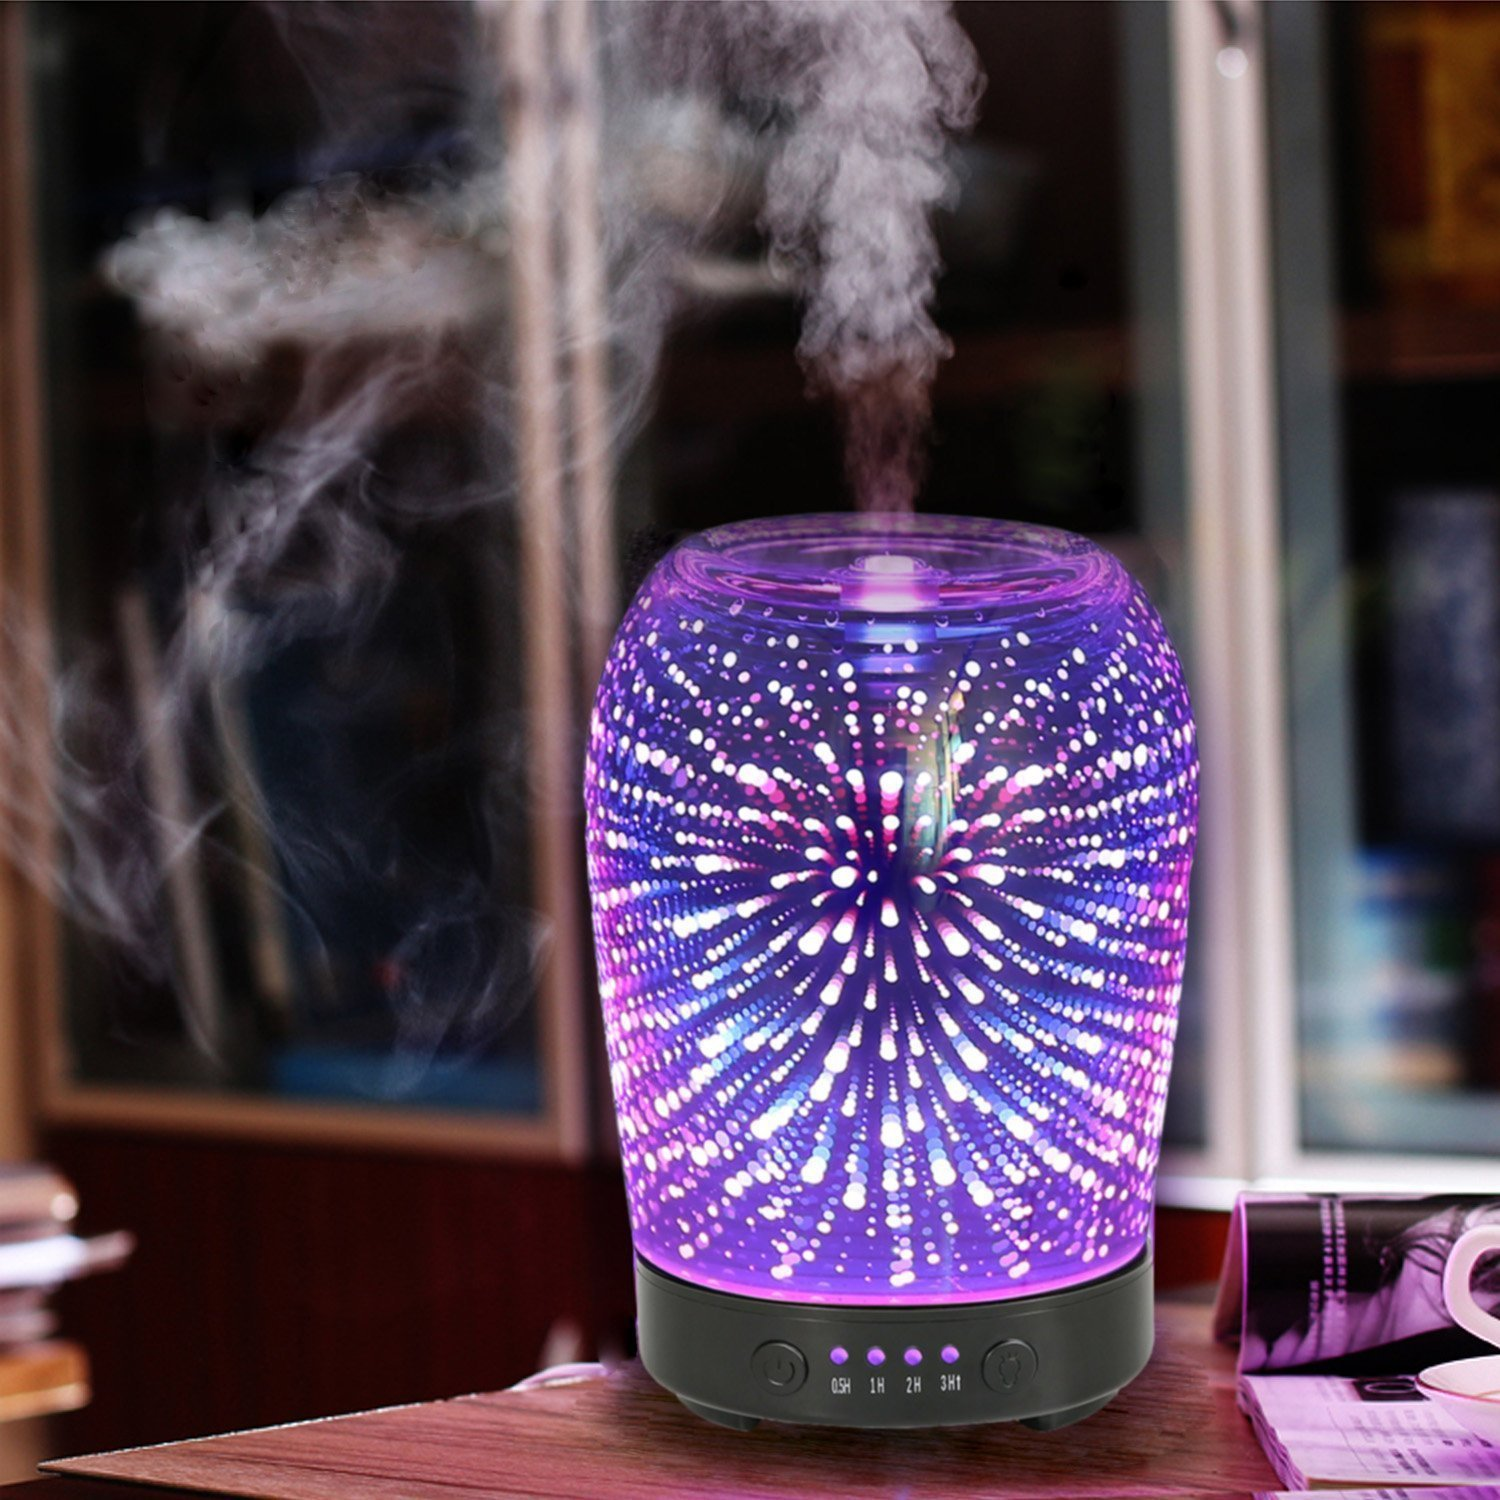 3D Humidifier Glass LED Night Lights Ultrasonic Aromatherapy Essential Oil Diffuser Ultra-quiet Portable Home Humidifier 7 colors leds night light 3d glass humidifier home essential oil diffuser aromatherapy air purifier 2018 new